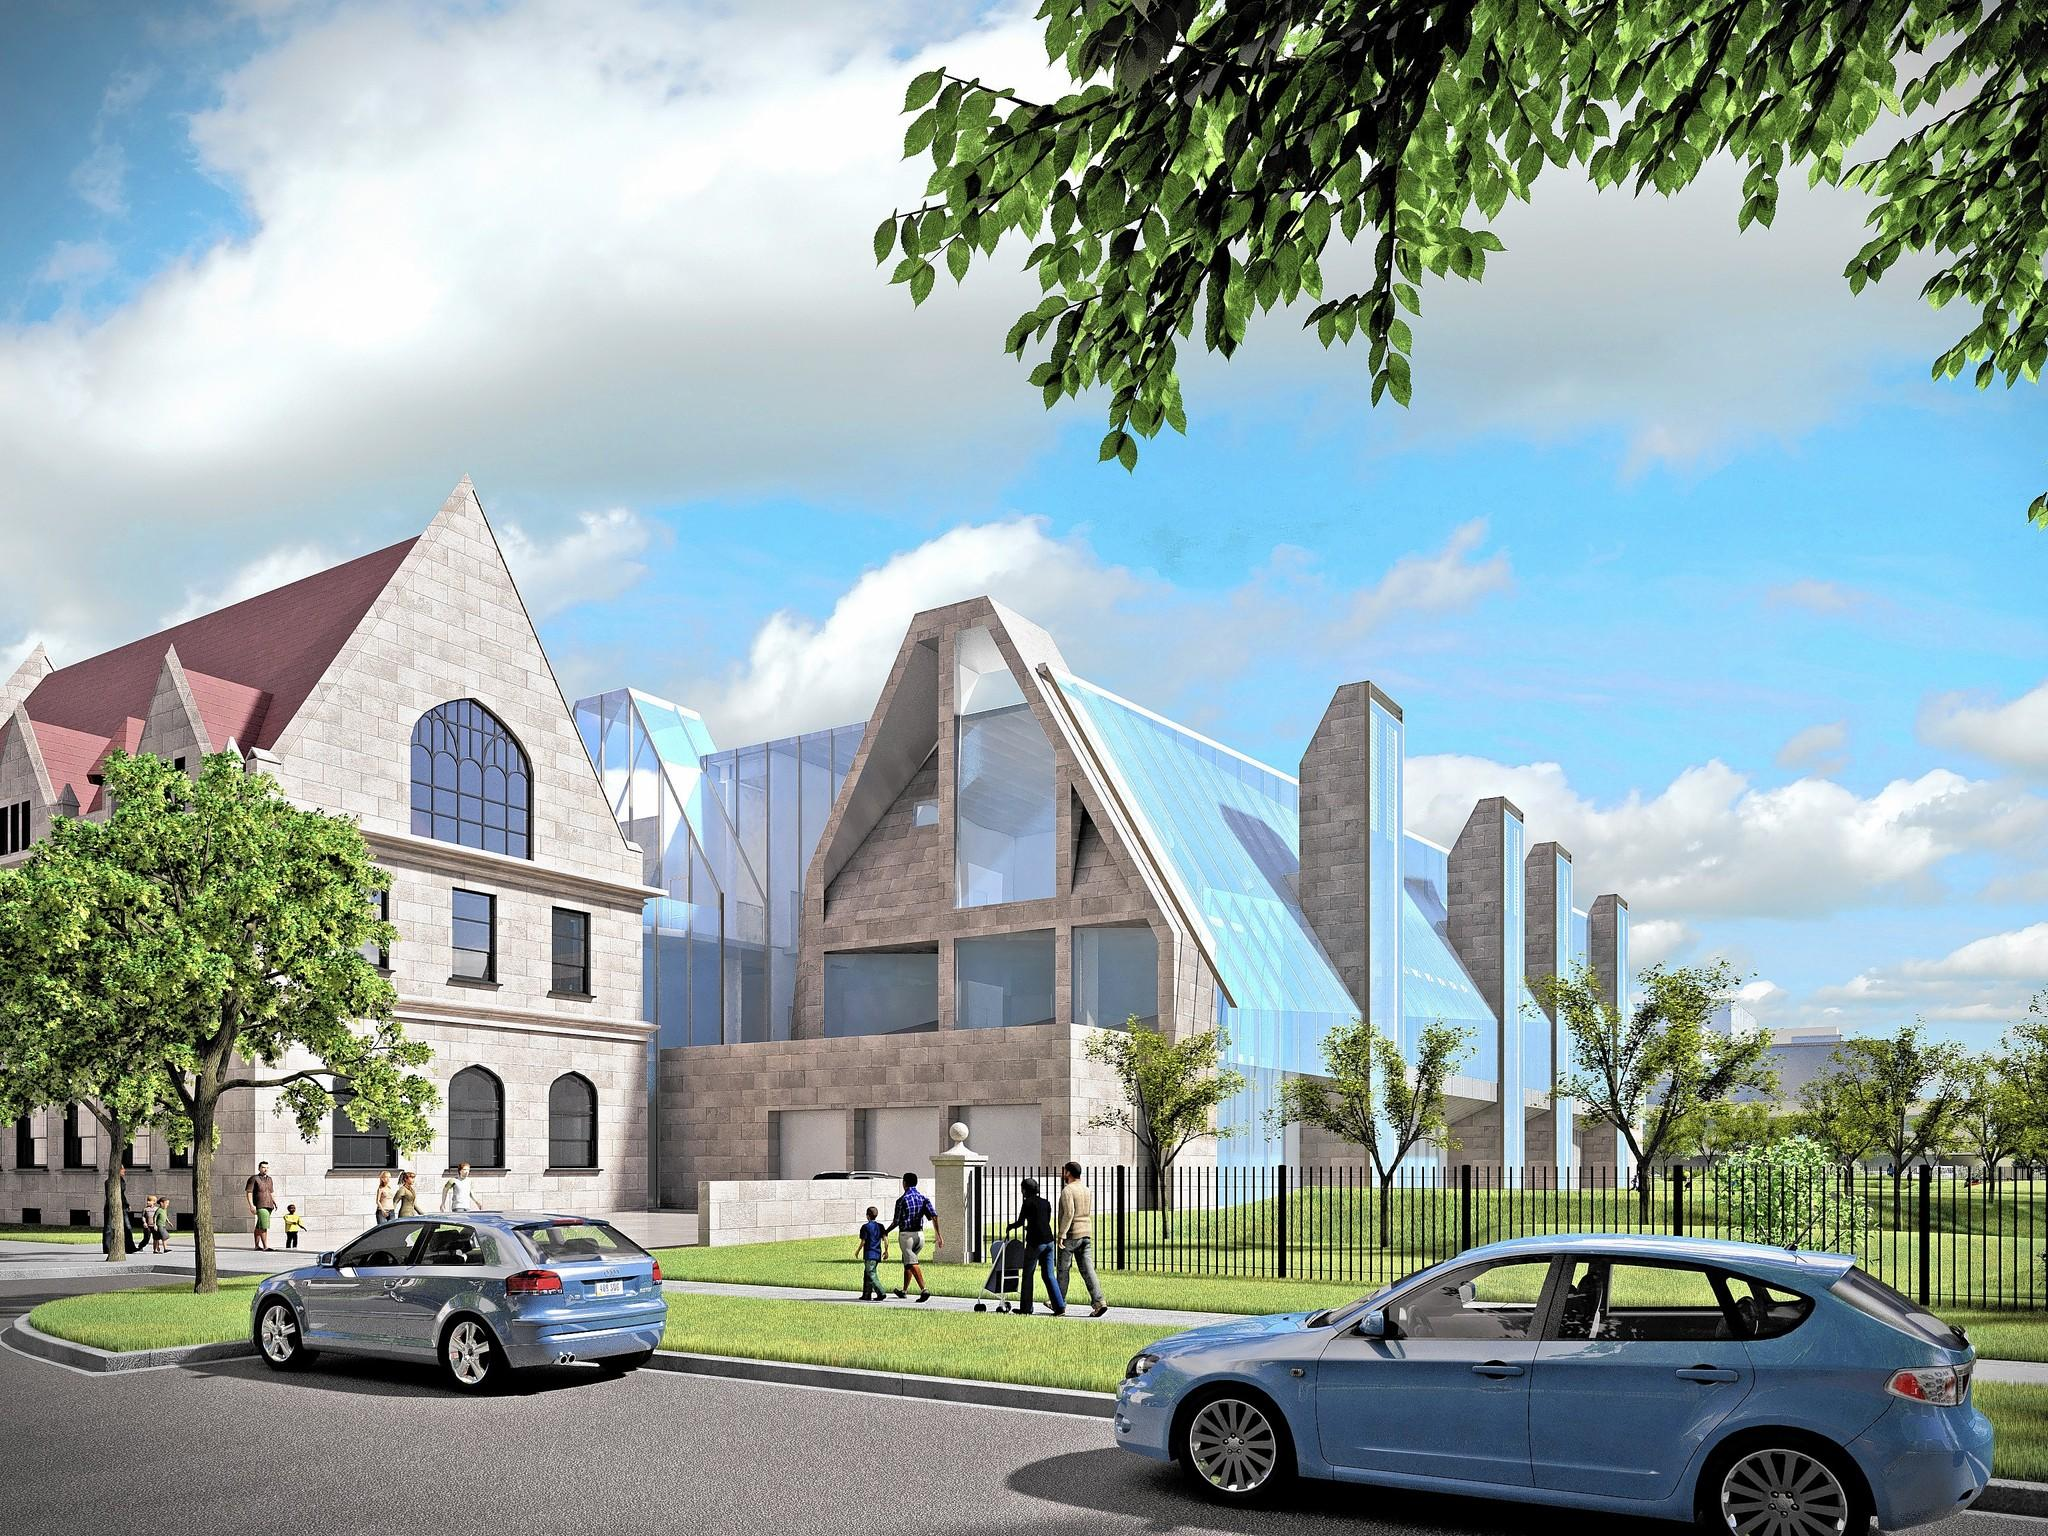 The Gordon Parks Arts Hall, seen in this rendering provided by Visualized Concepts, is believed to be the first building on the University of Chicago campus that will be named after an African-American, according to John Rogers Jr., chairman of U. of C.'s Laboratory Schools.